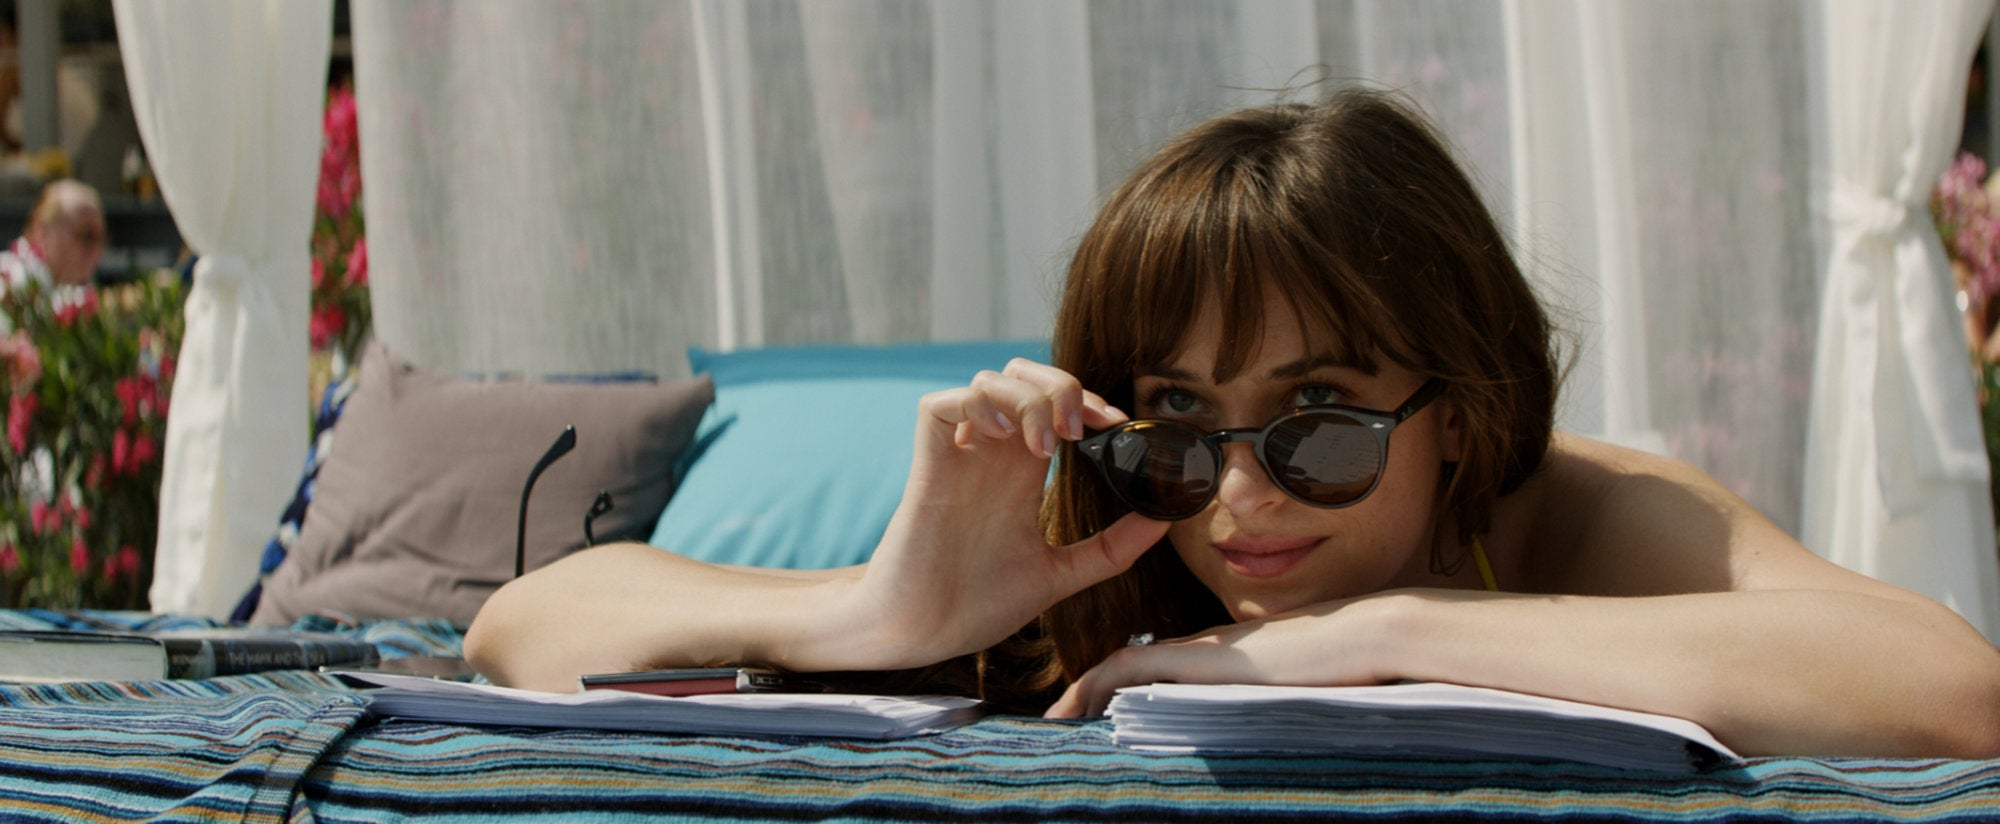 Dakota Johnson in ascene from 50 Shades Freed